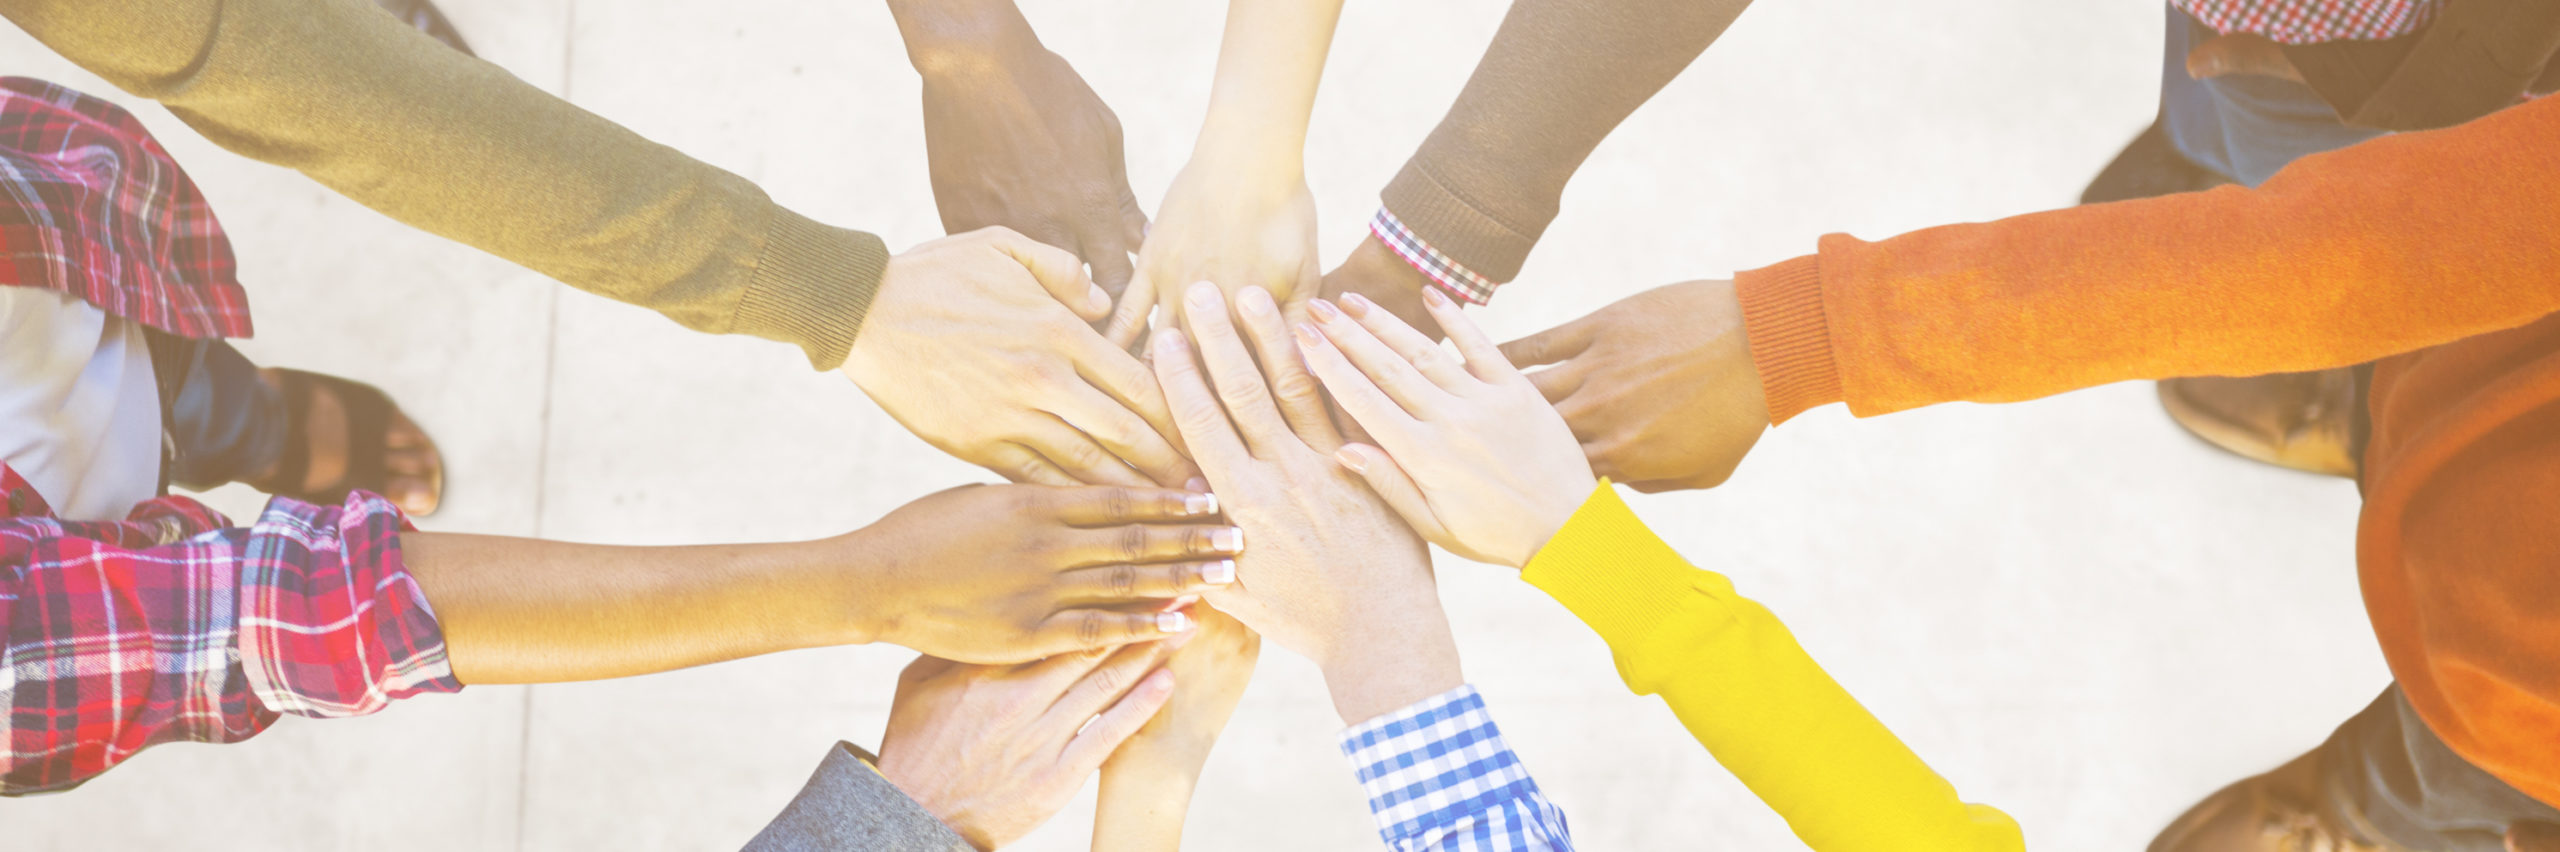 Group of people putting hands together in a circle